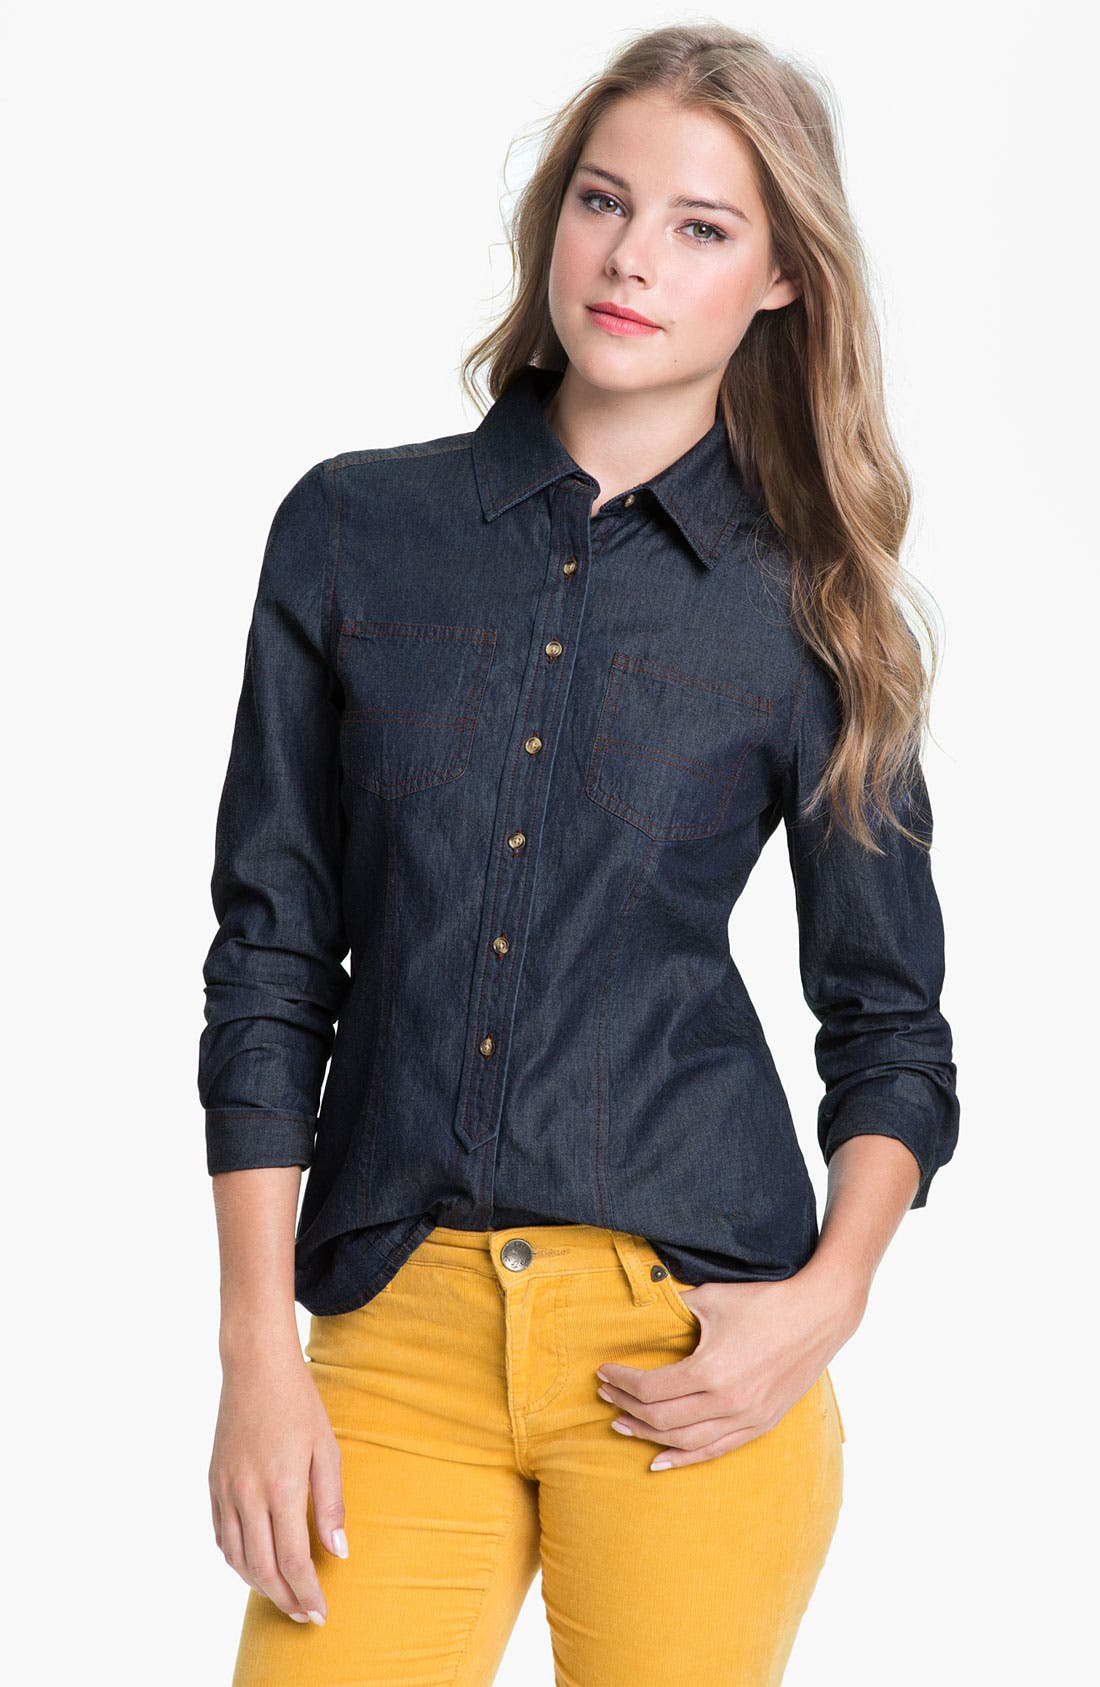 Alternate Image 1 Selected - Pendleton Denim Shirt (Online Exclusive)